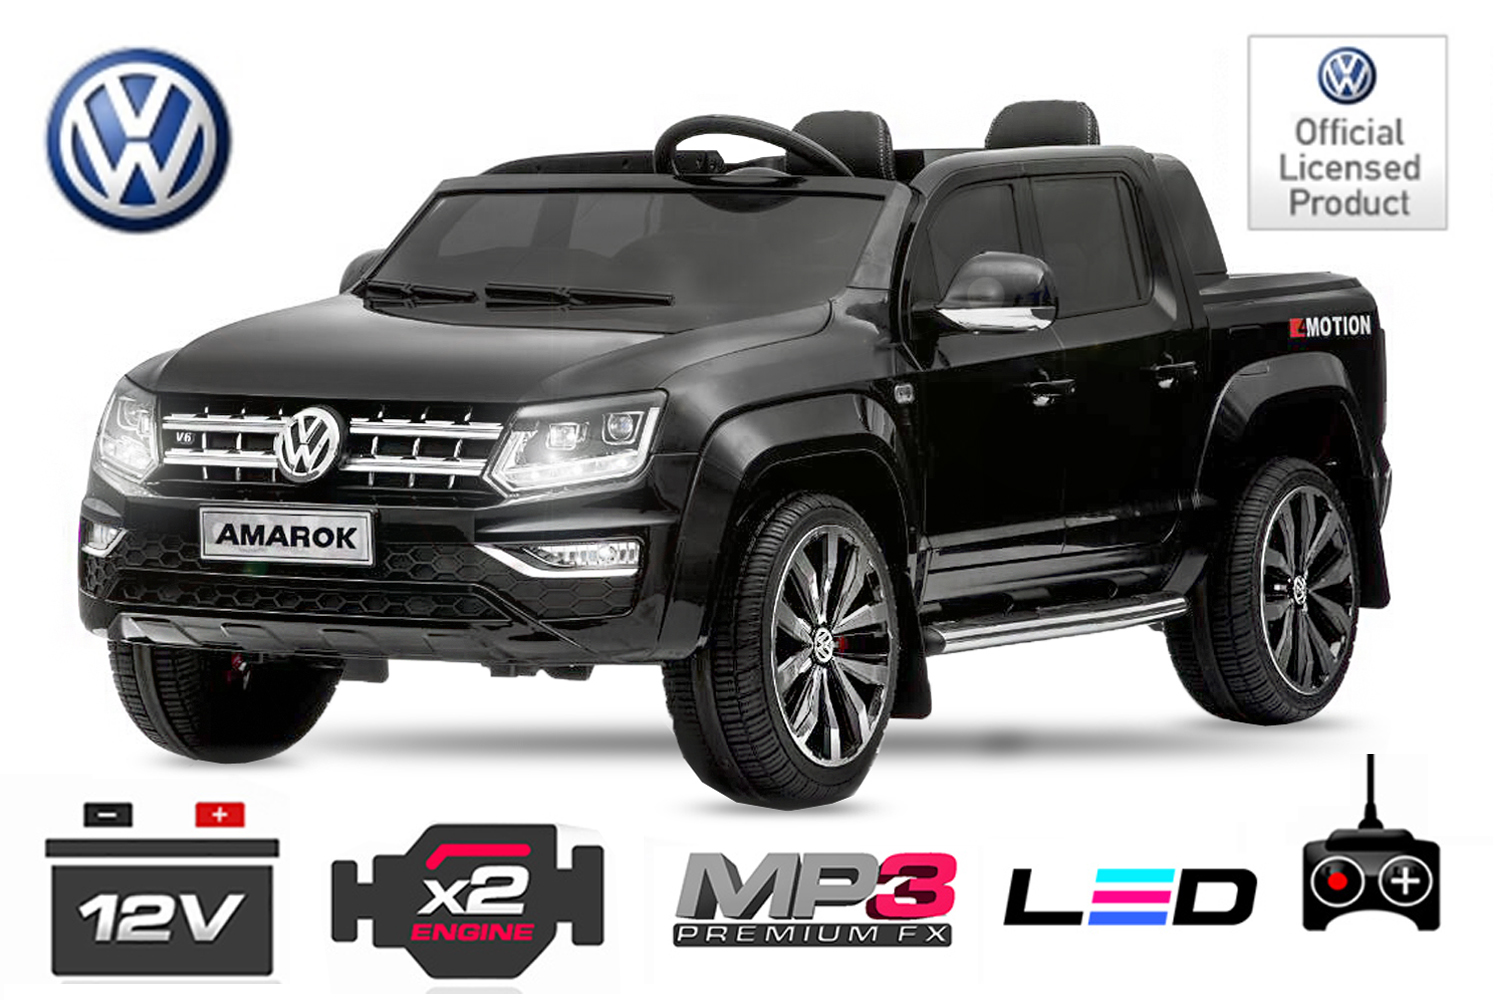 kinder elektroauto 2 sitzer vw amarok akku betrieben ebay. Black Bedroom Furniture Sets. Home Design Ideas